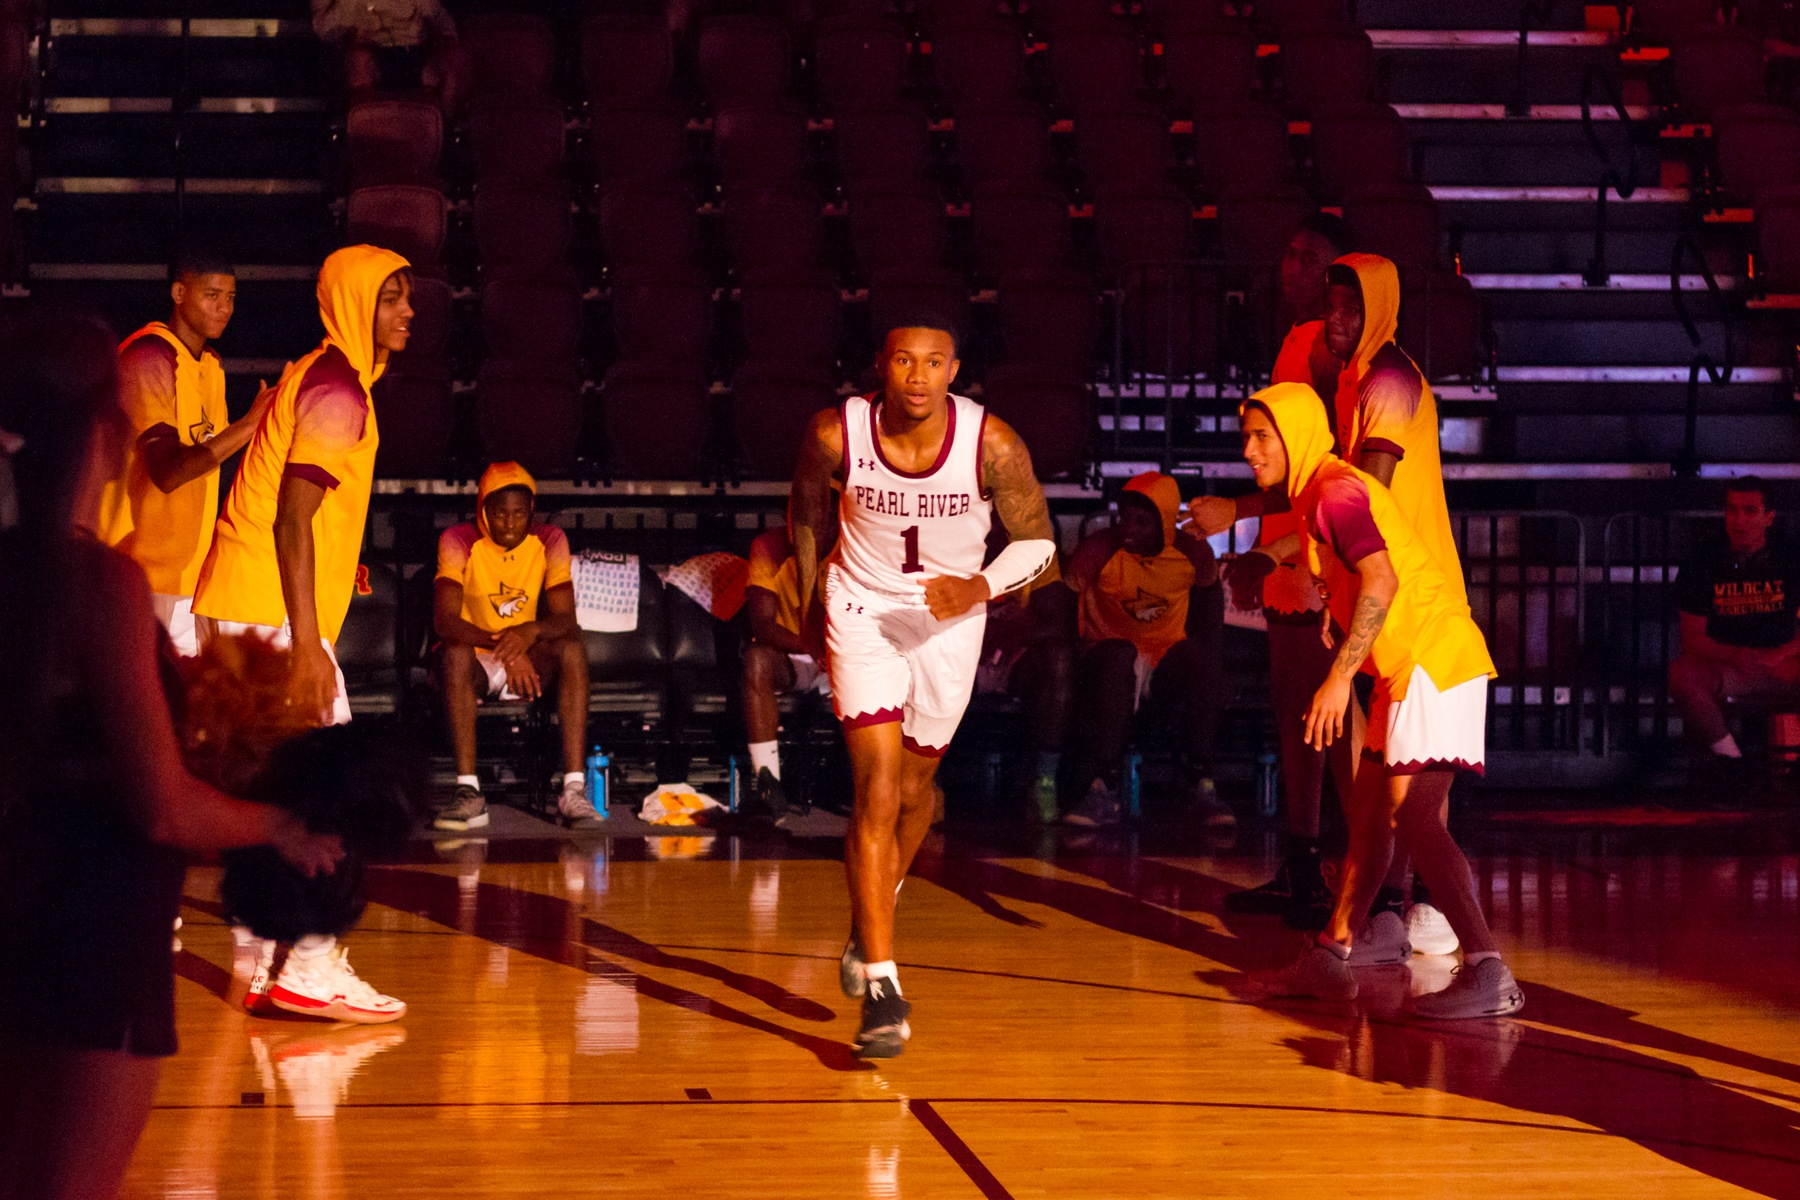 No. 11 Pearl River defeated visiting William Carey JV 116-33 on Thursday, Nov. 7, 2019 in the Marvin R. White Coliseum in Poplarville, Miss. (BRETT RUSS/PRCC ATHLETICS)